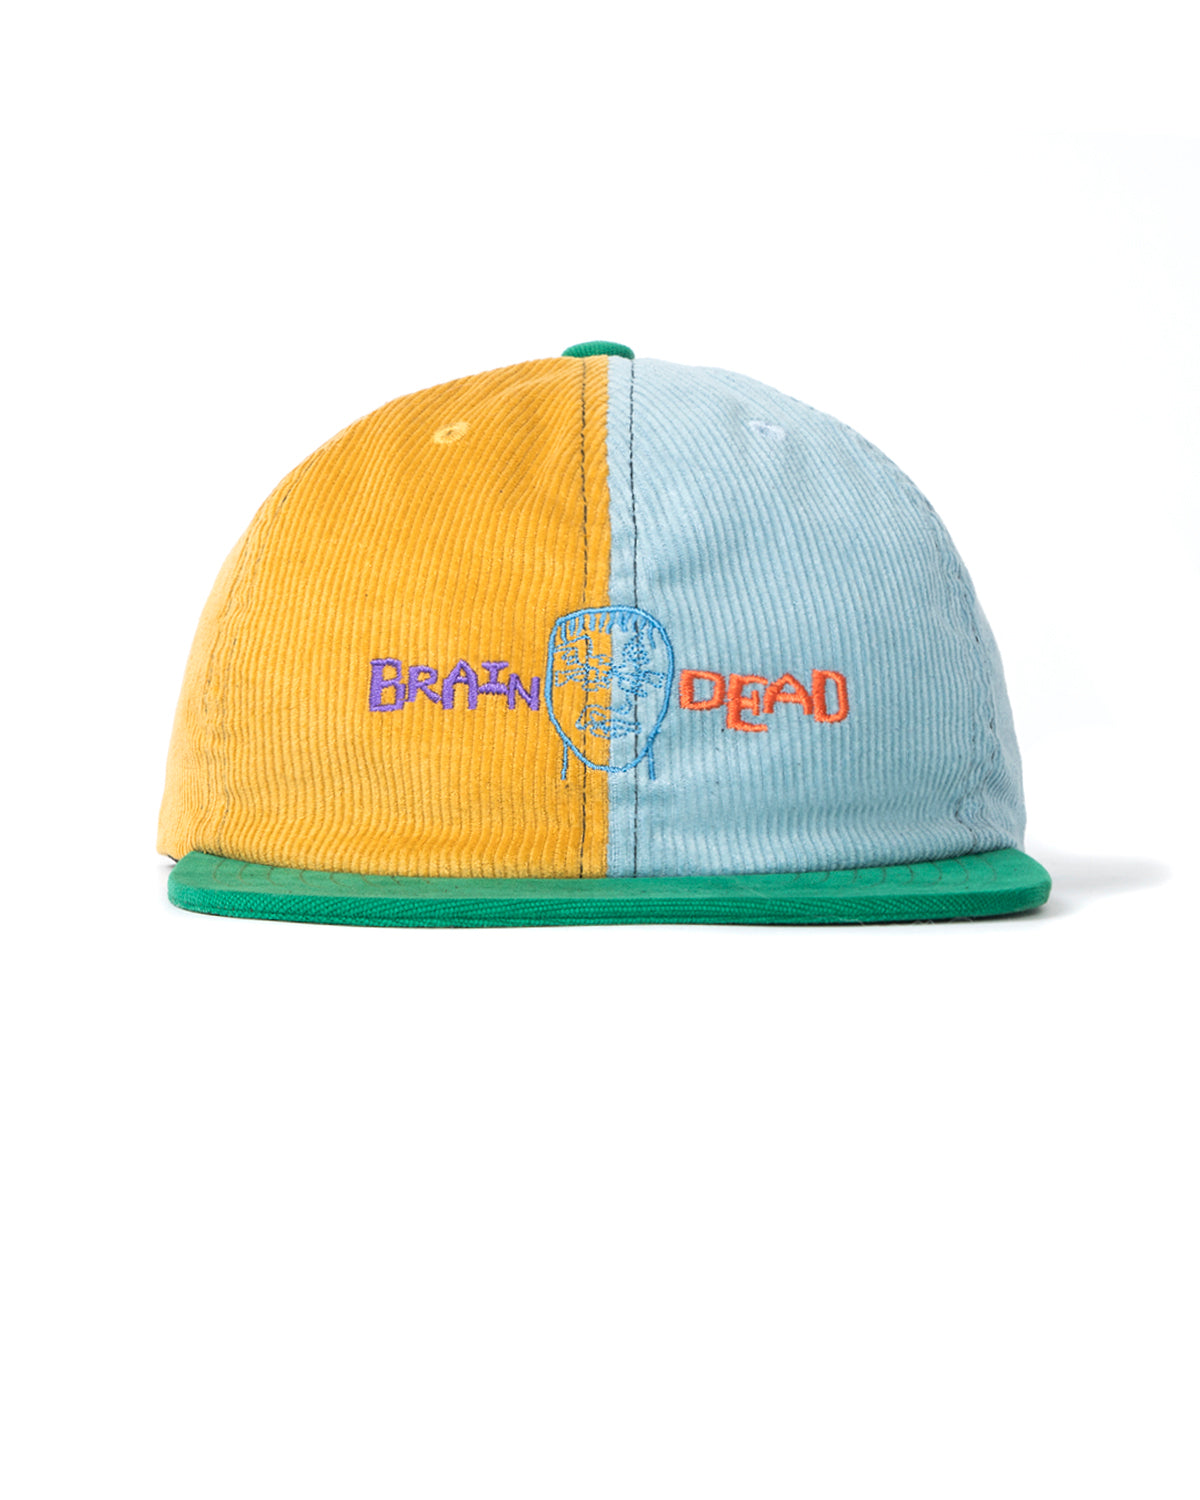 Corduroy Color-blocked strap back Hat - Yellow/Teal/Green